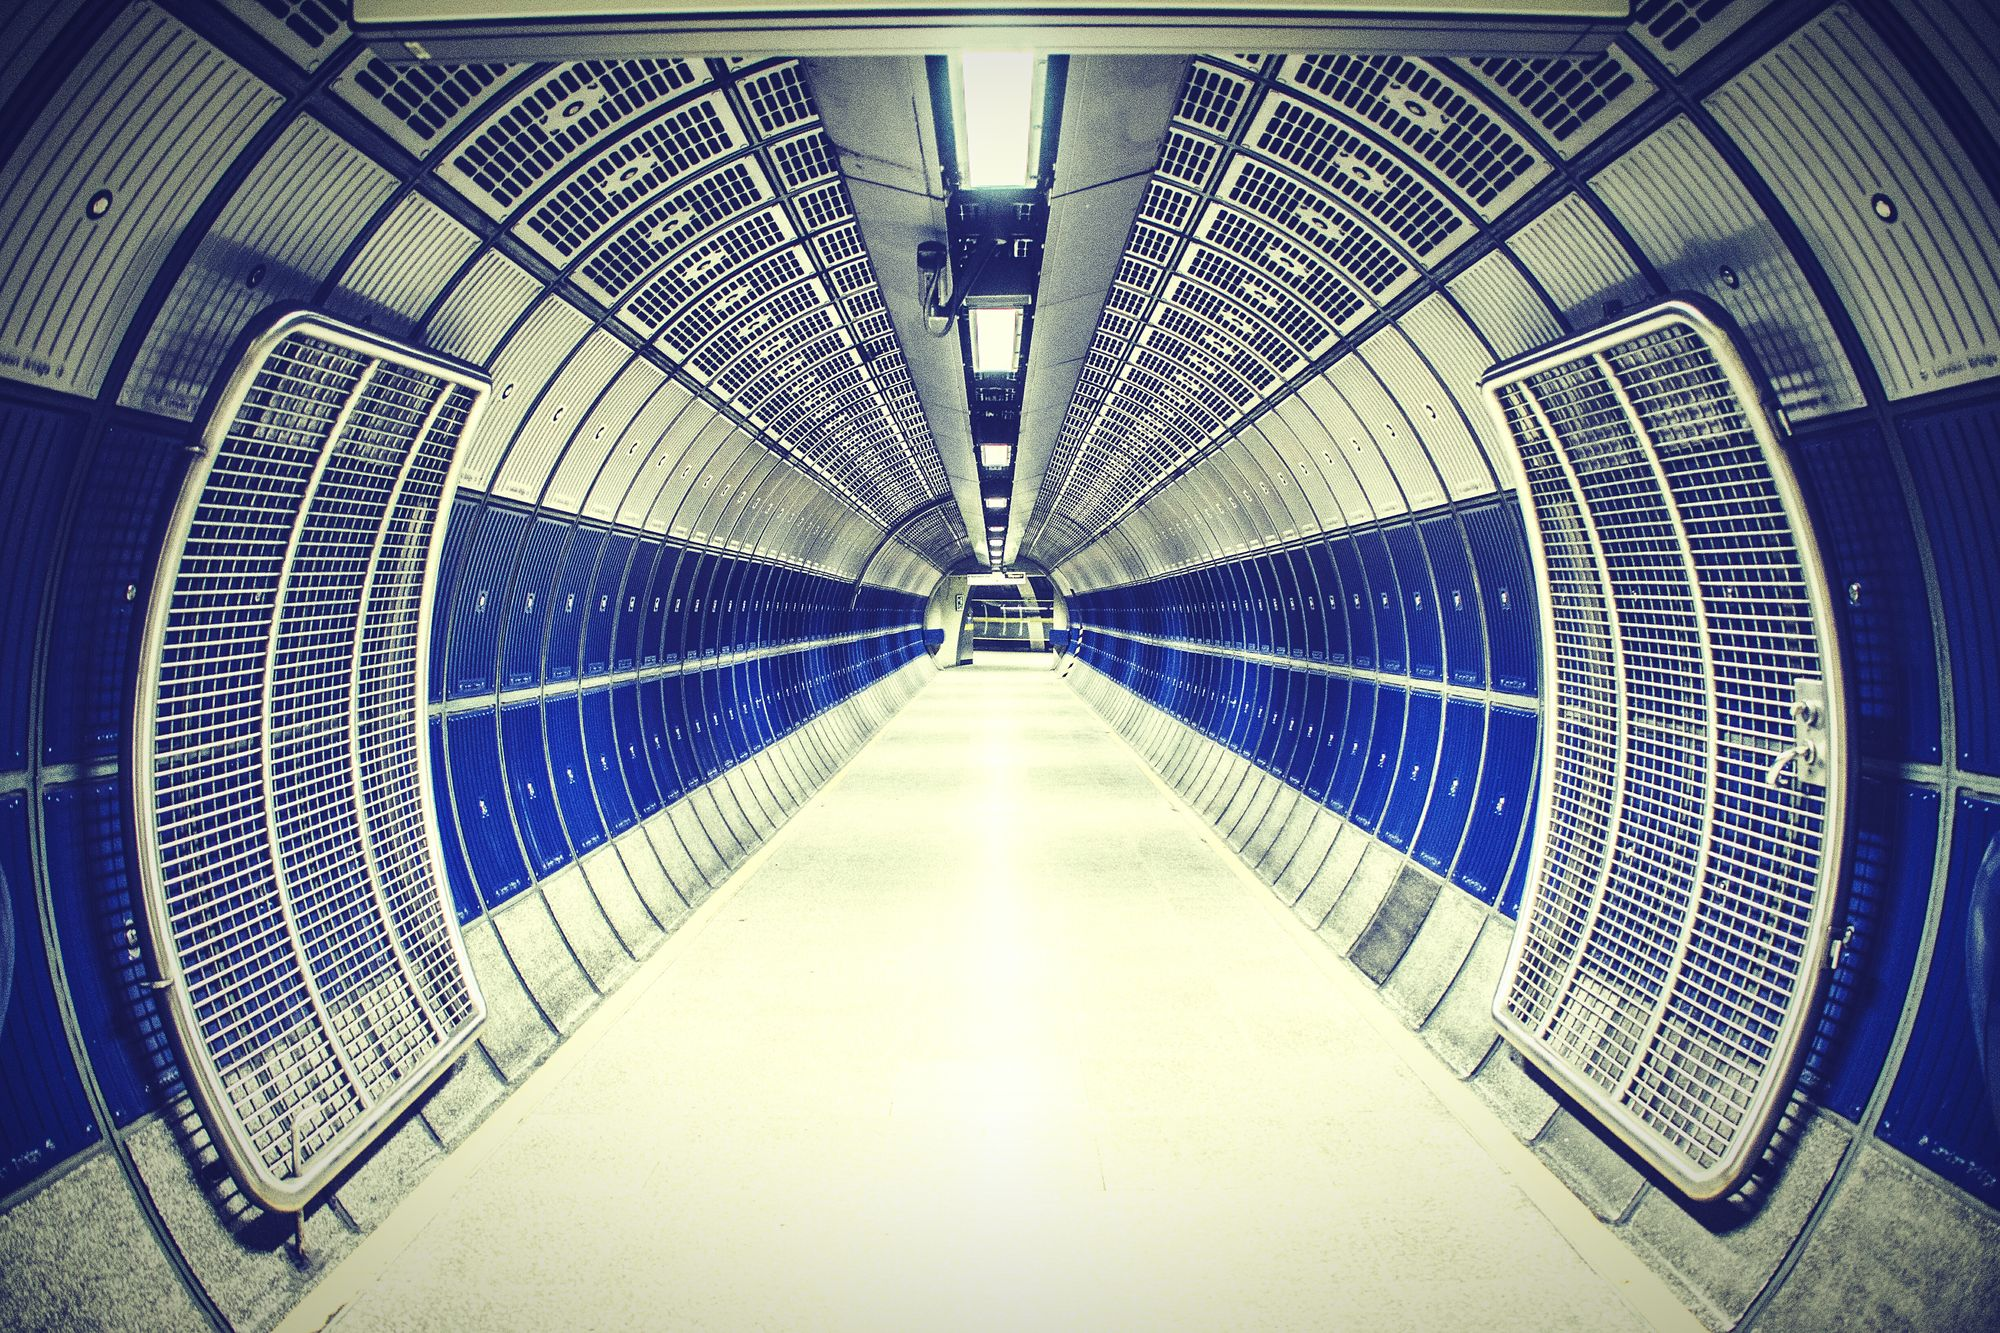 Walking the halls of The Death Star or just London Underground. Empty Long Flooring Built Structure Ceiling Transportation Architecture Narrow Surface Level Modern Walkway Pathway Diminishing Perspective Tunnel Pedestrian Walkway Underpass Arched Paulkennedyphotography Tourism City Life Deathstar Deathststar Star Wars London Underground